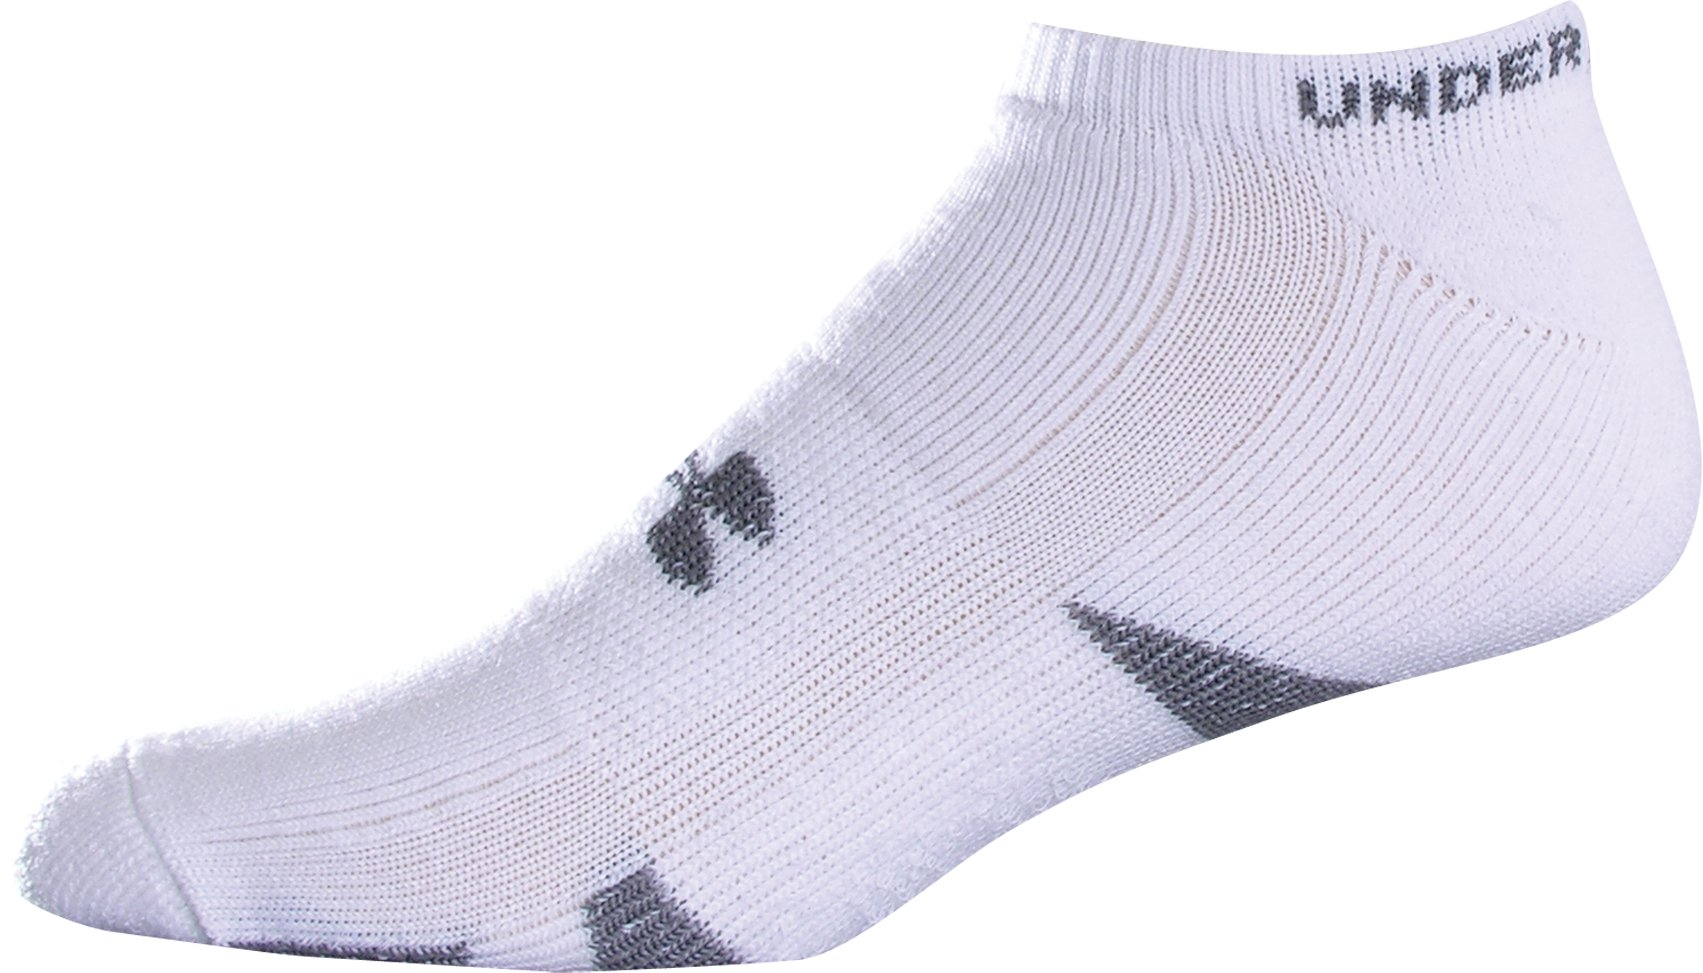 HeatGear® Trainer No Show Socks 4-Pack, White